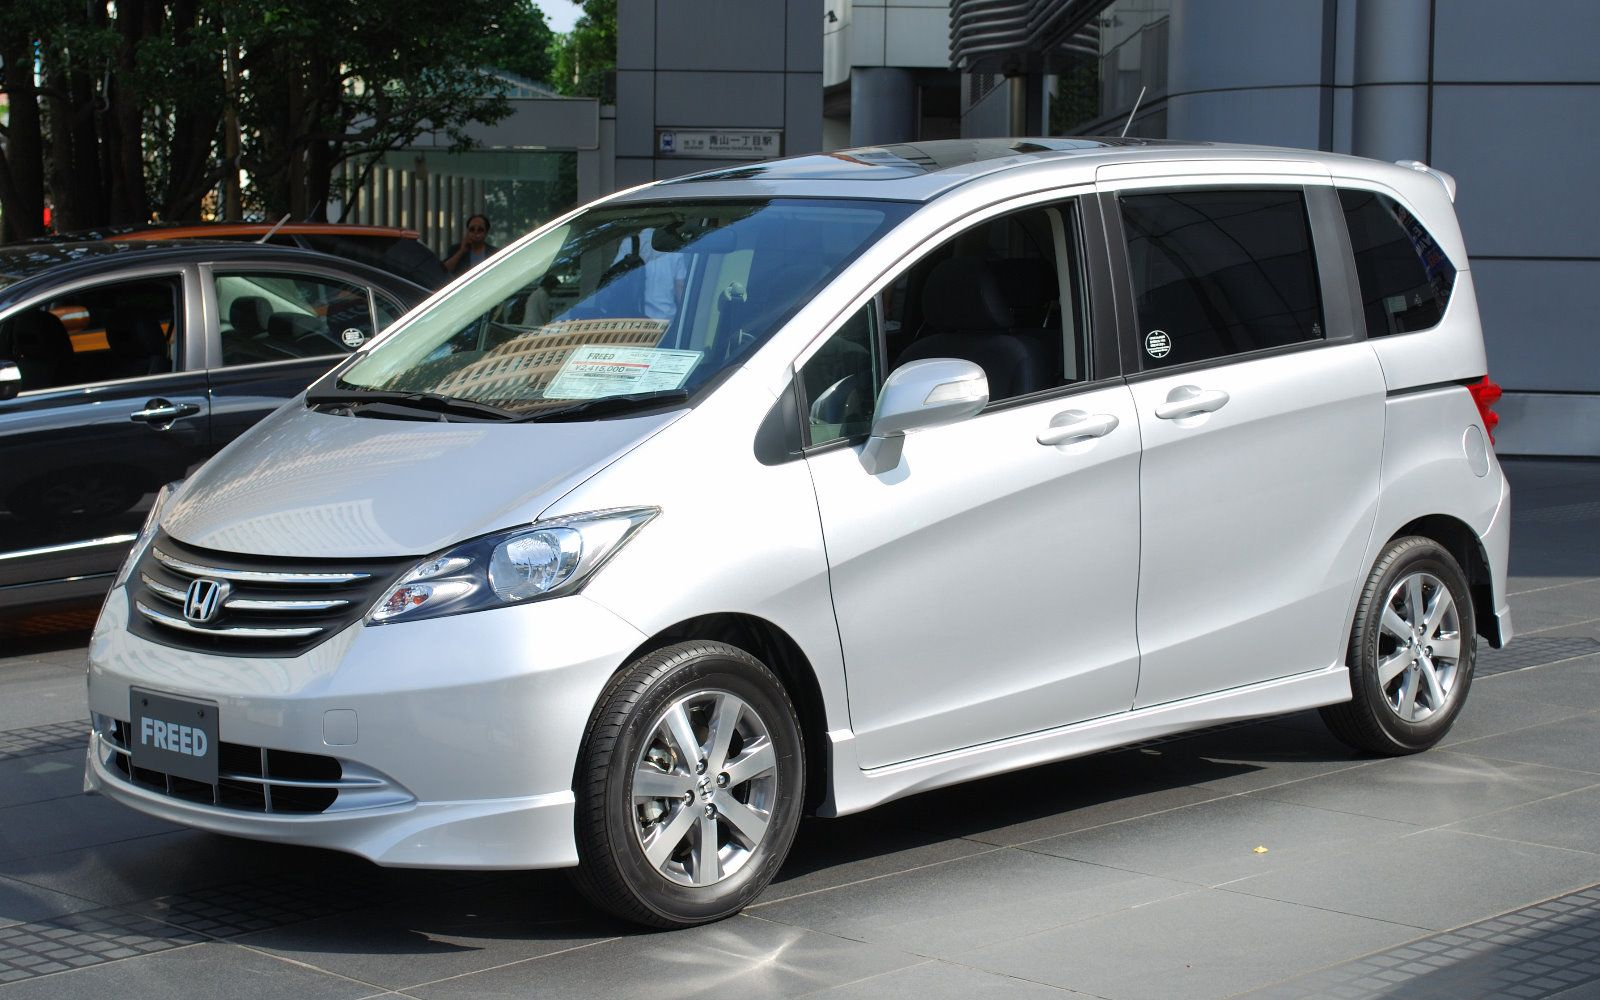 Honda to bring in freed mpv by to rival toyota innova honda is considering to introduce feed mpv in 2016 to rival the toyota innova